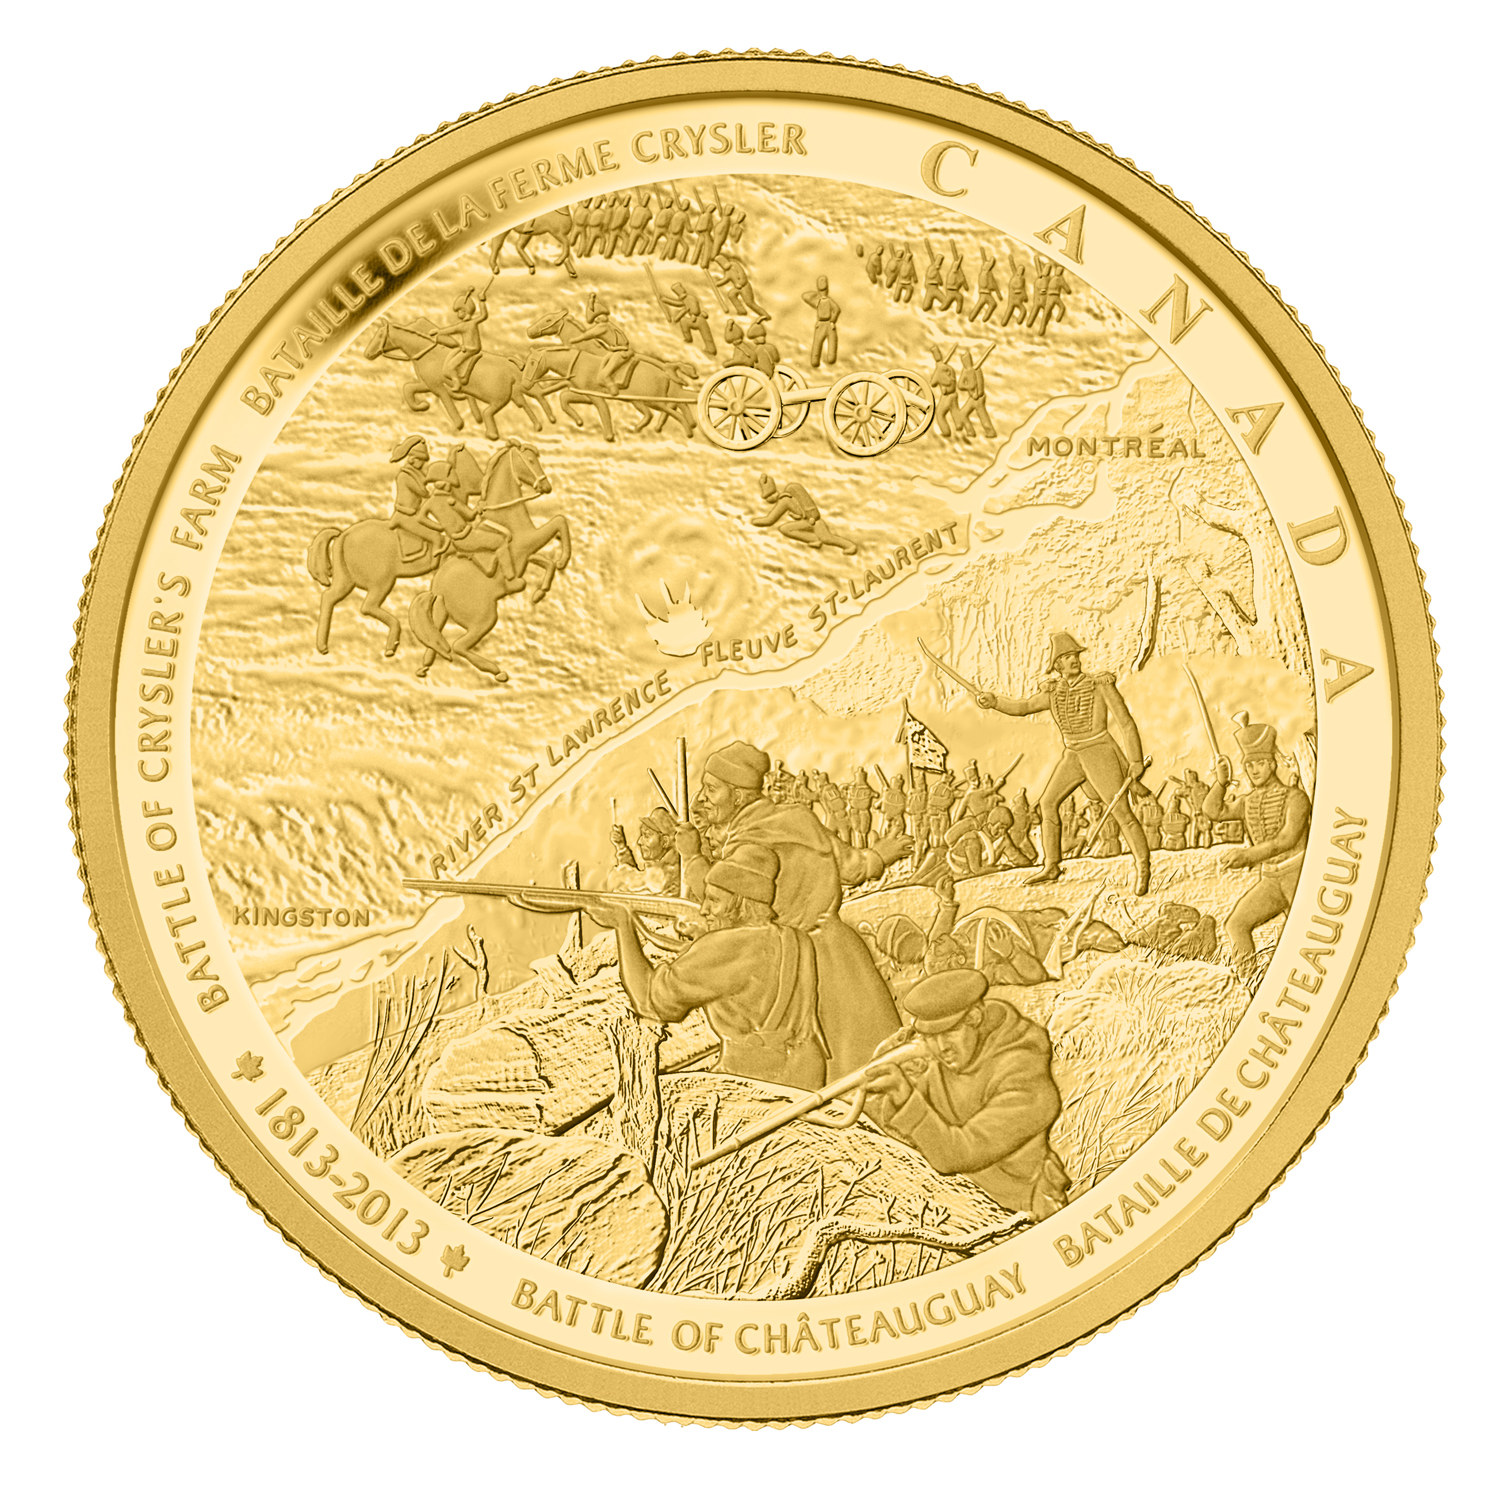 2013 Gold Kilo Canadian $2,500 War of 1812 -Battle of Chateauguay